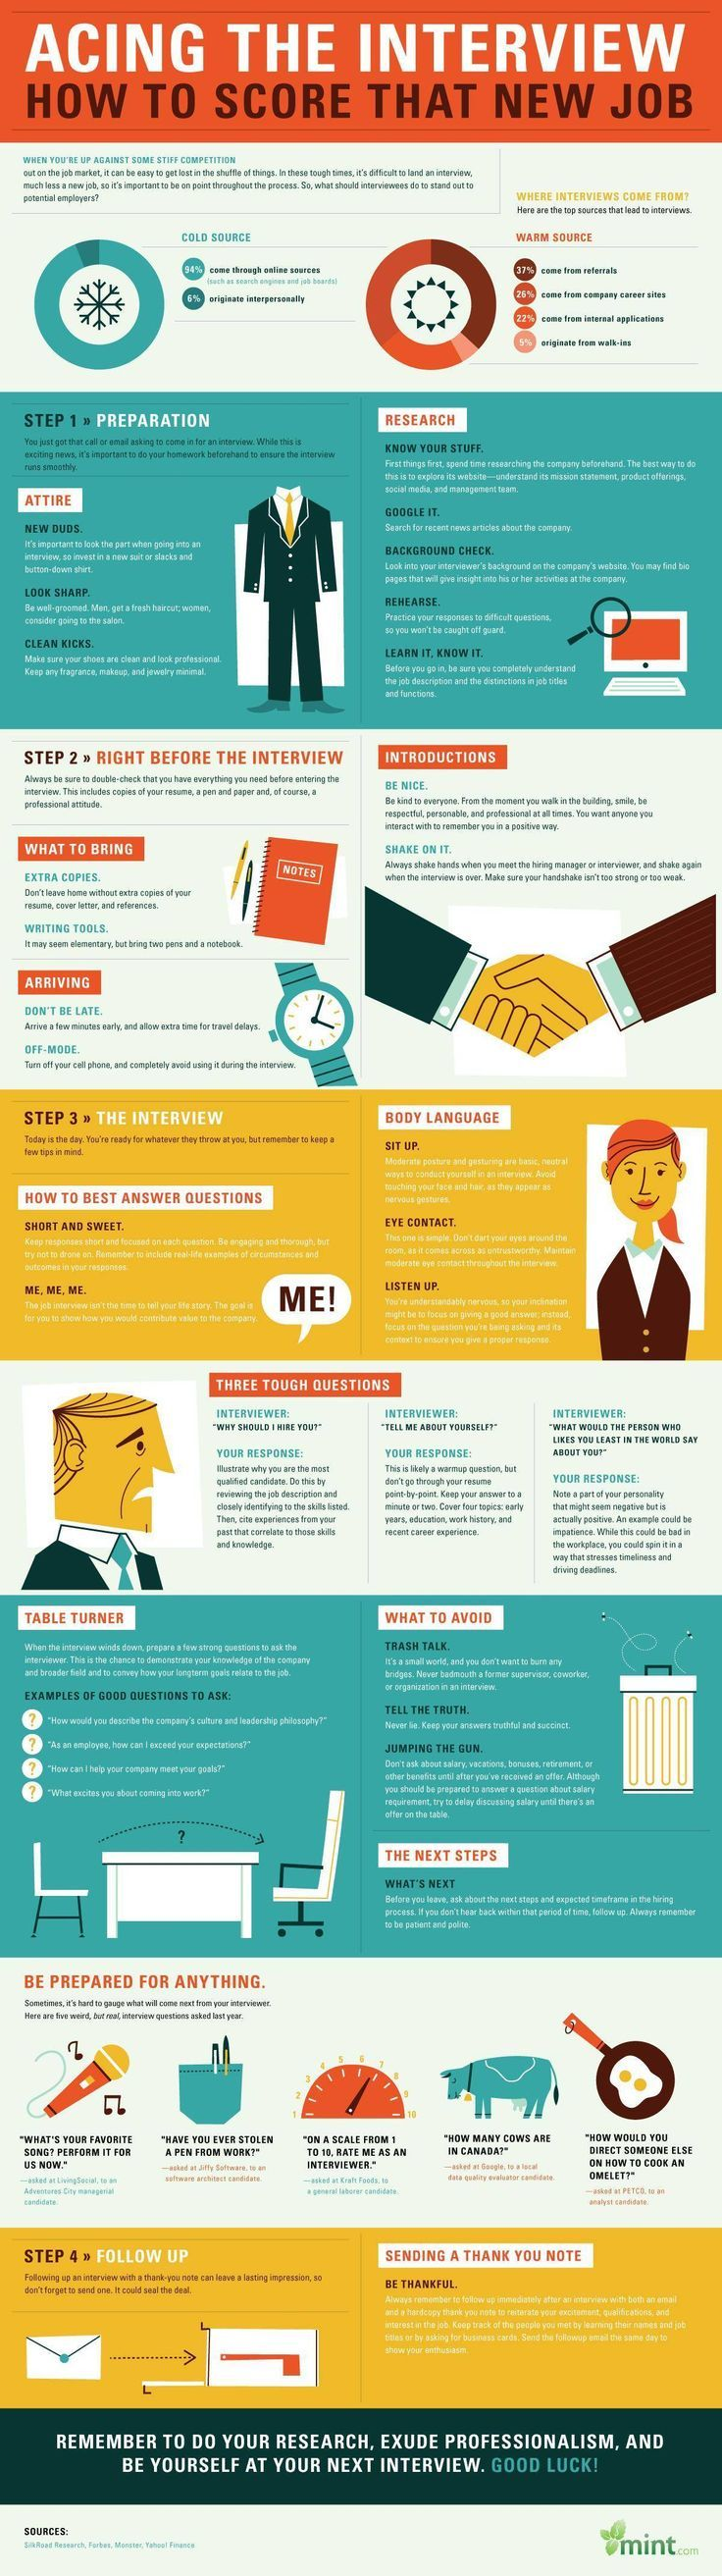 17 best images about job interview tips dental a handy infographic outlining the steps necessary to ace an interview